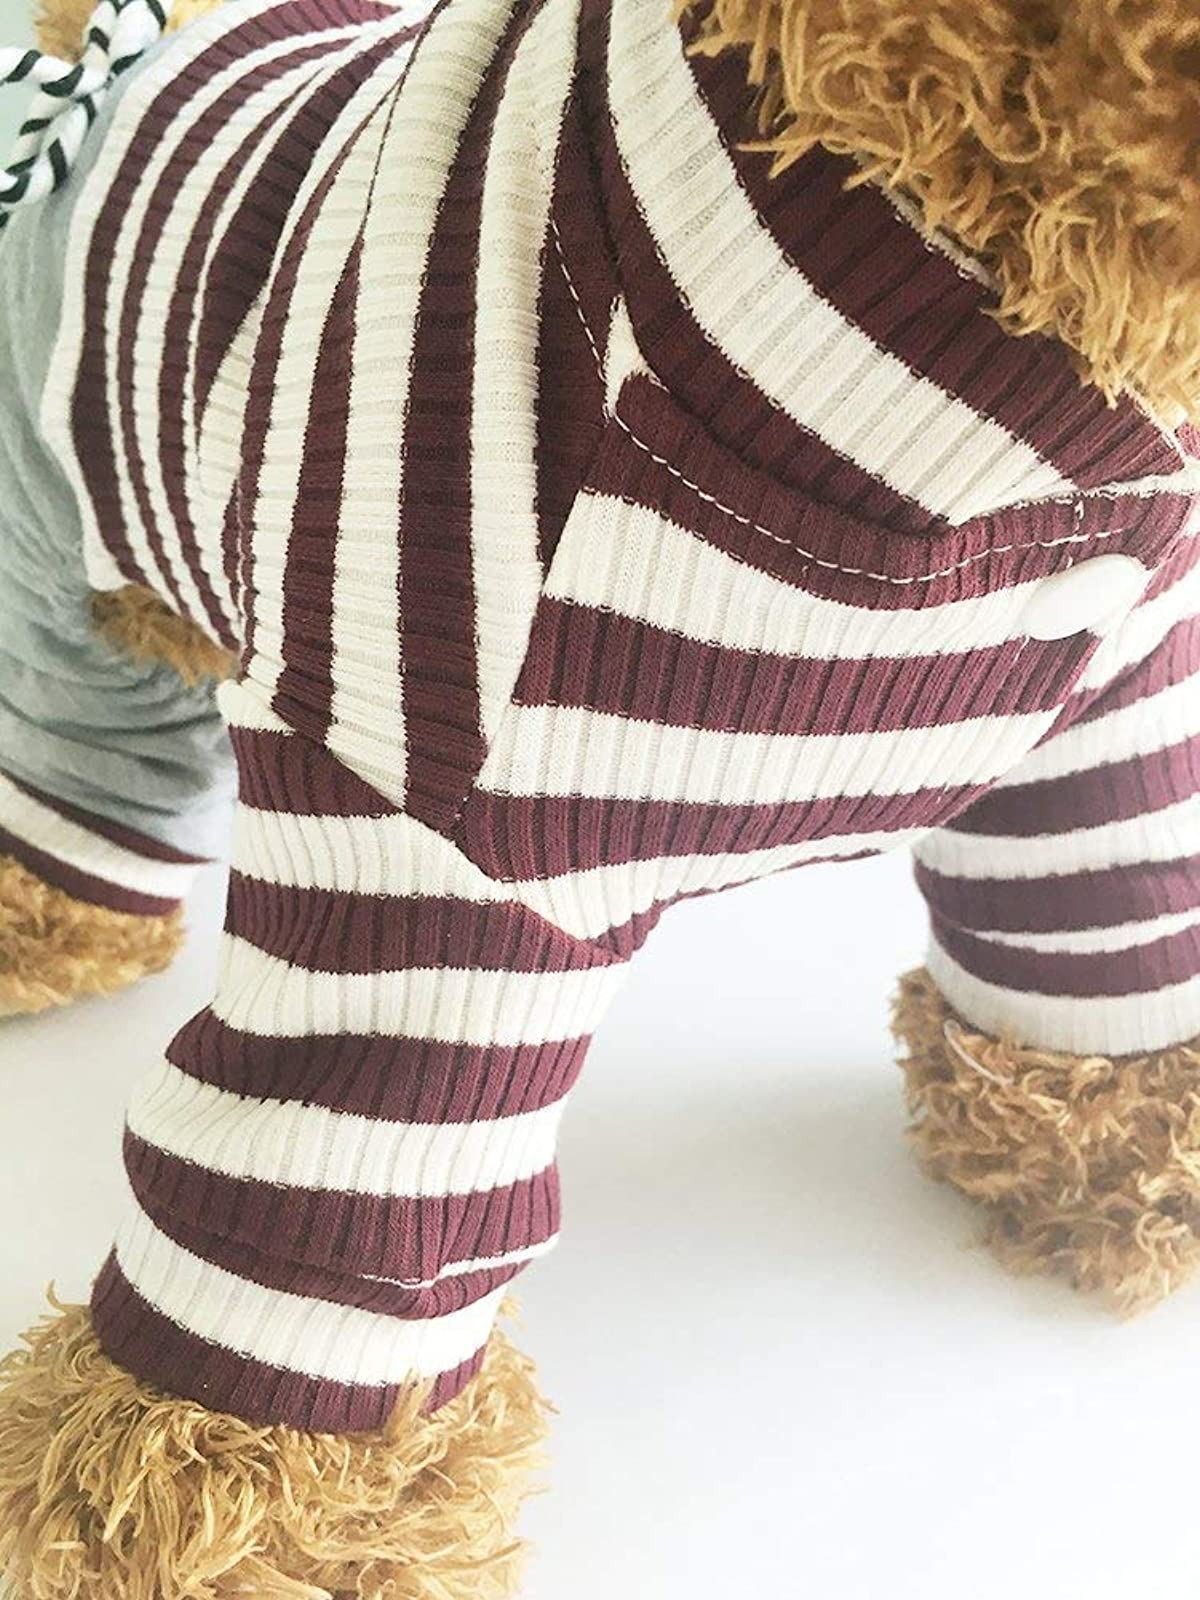 EastCities Dog ClothesSmall Dogs Pajamas Puppy OutfitBrown - 1